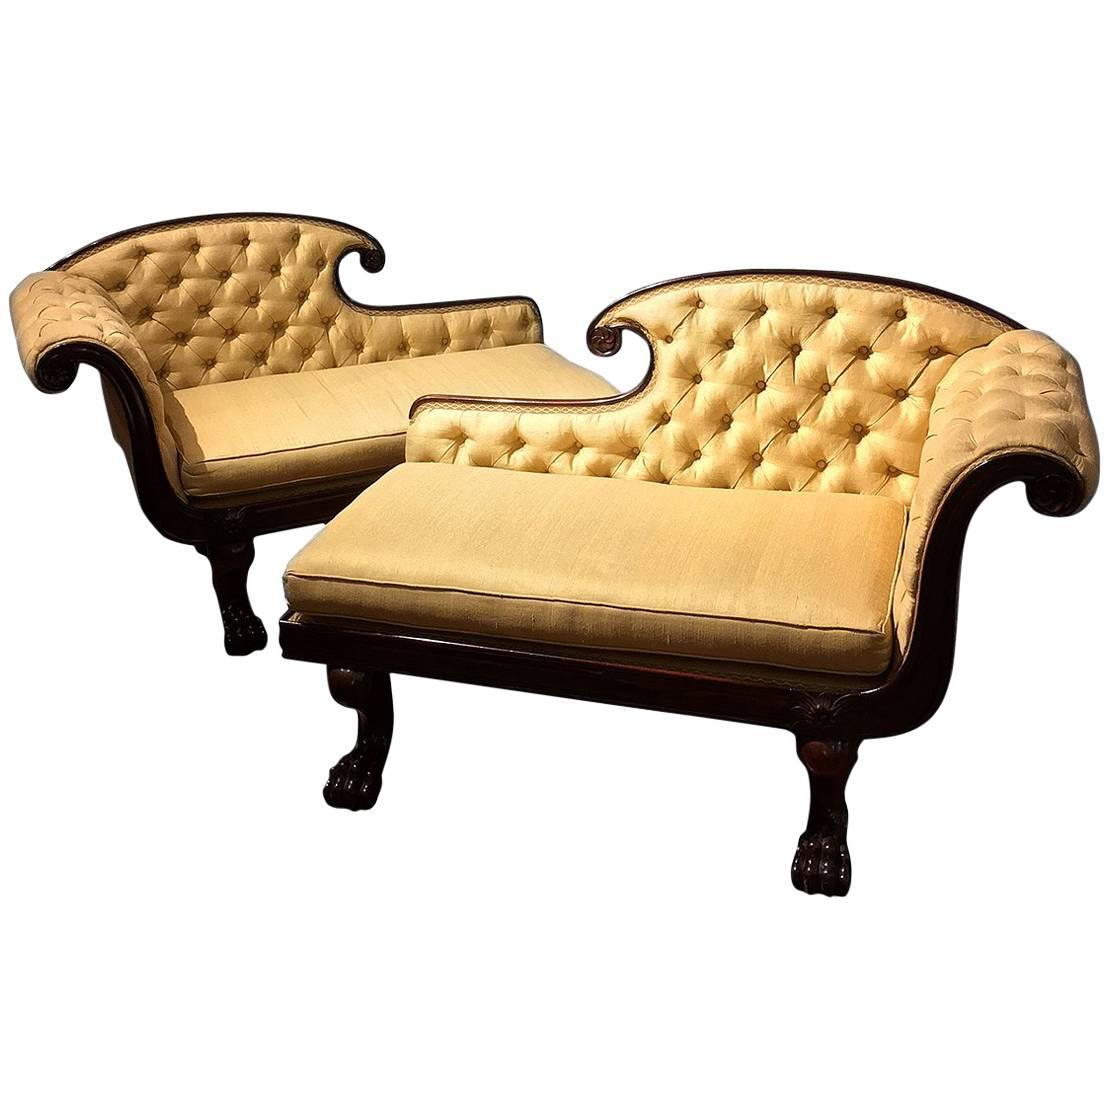 Chaise Style Pair Of Diminutive Chaise Lounges In The Méridienne Or